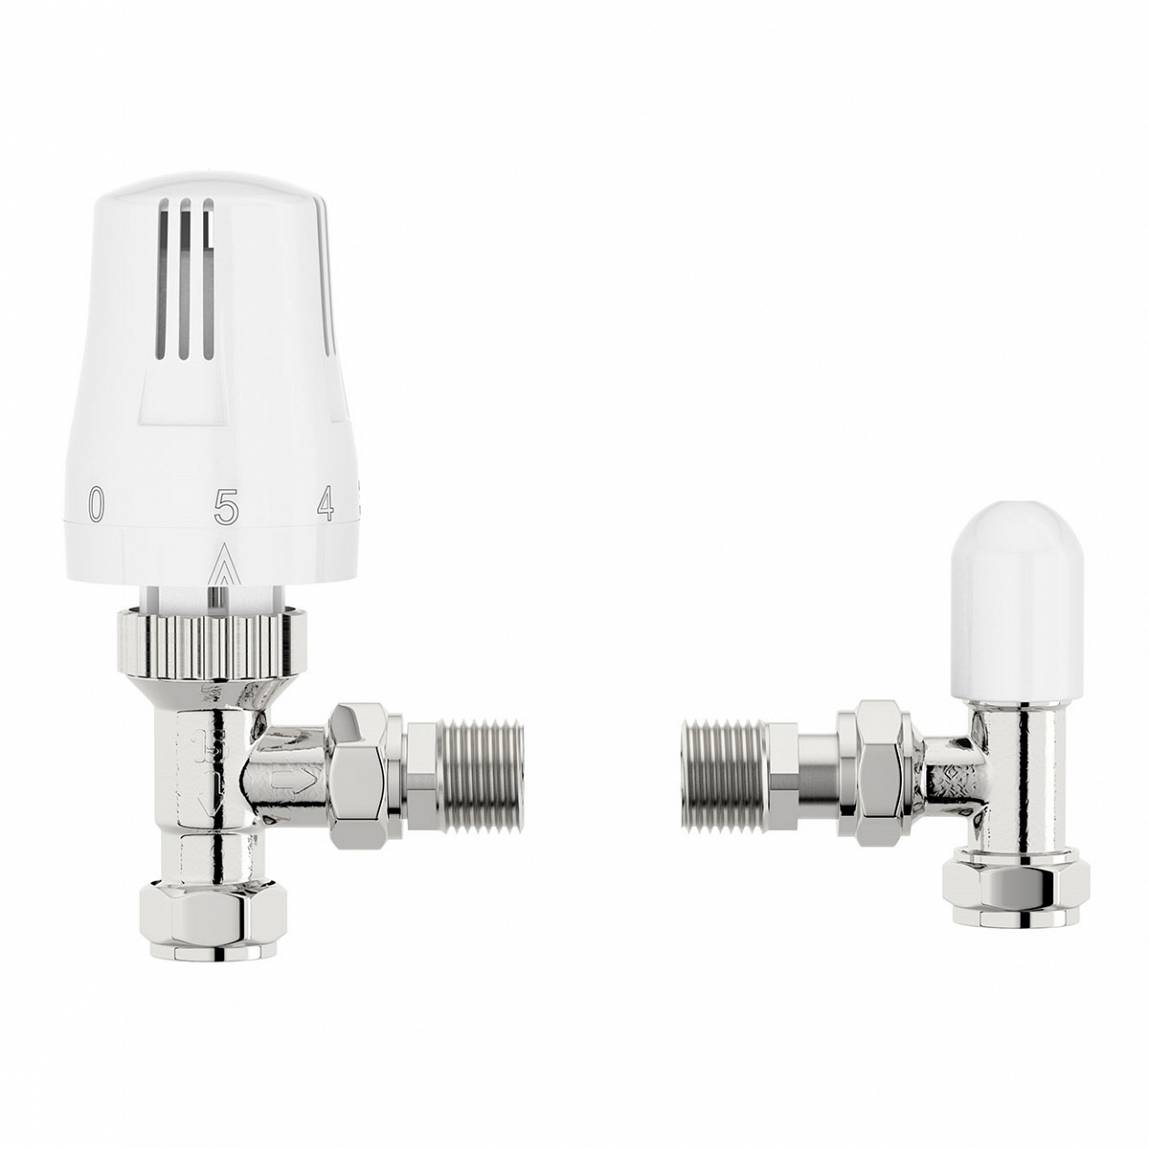 Image of Thermostatic White Angled Radiator Valves